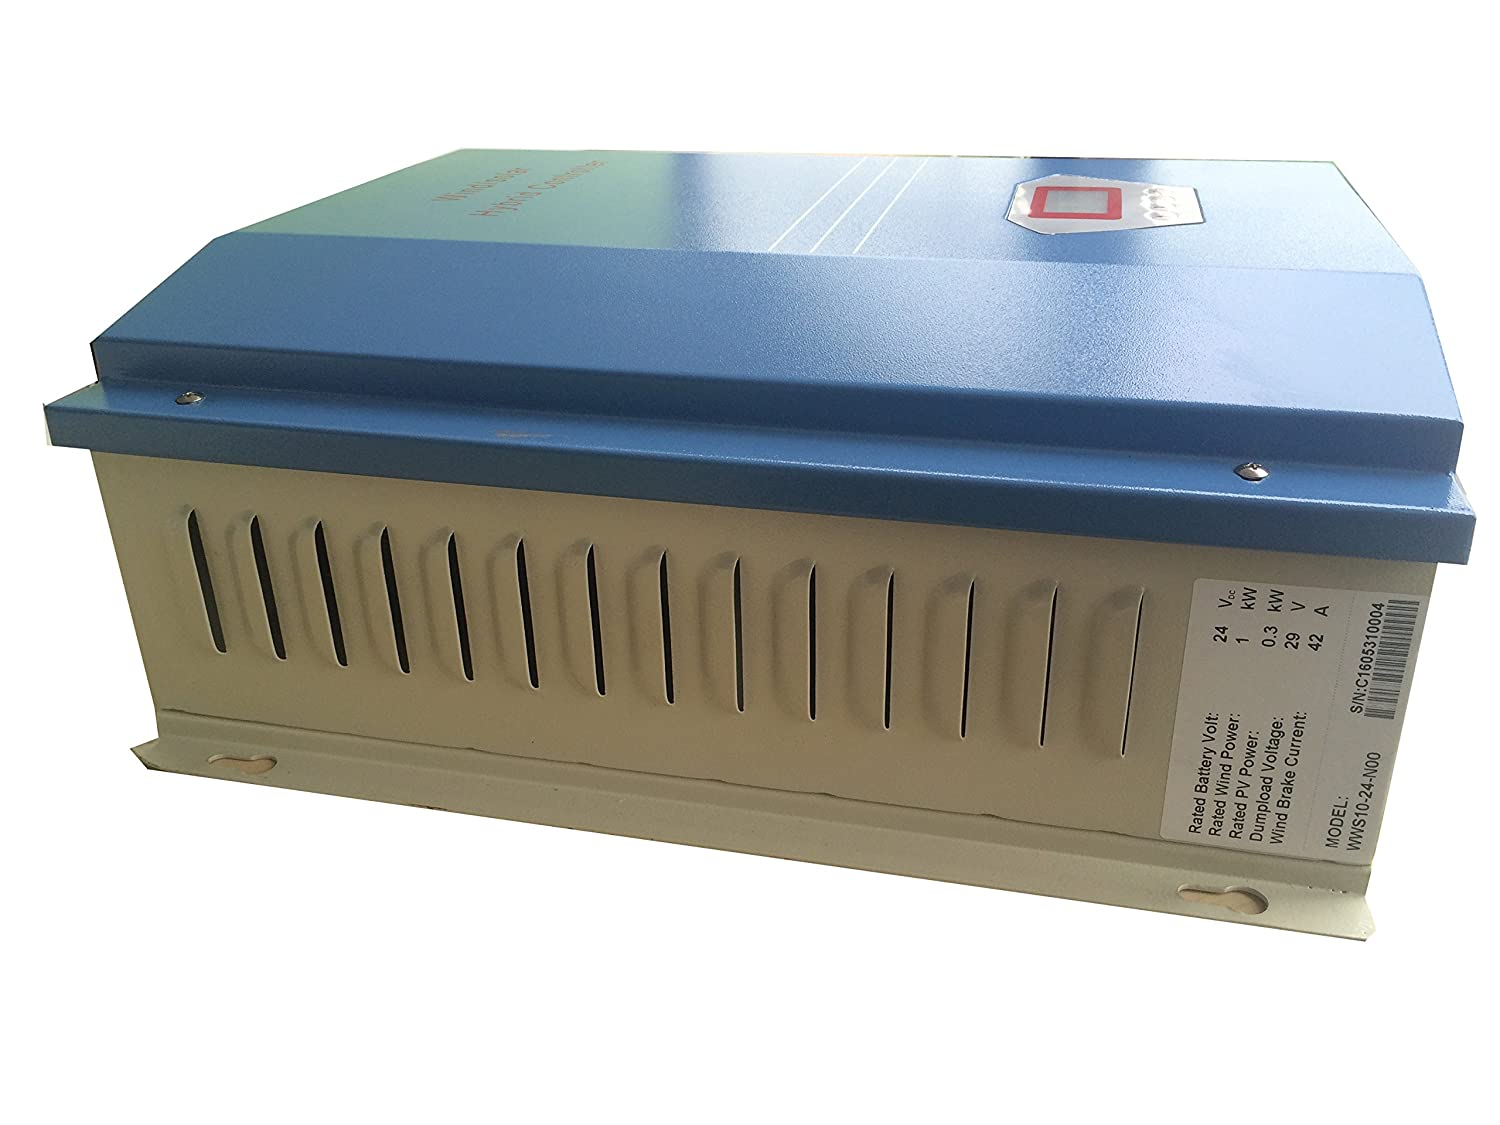 Tumo Int 1000w 24v Wind And Solar Hybrid Controller With Built In Turbine Dumpload Charge Dump Load Garden Outdoors